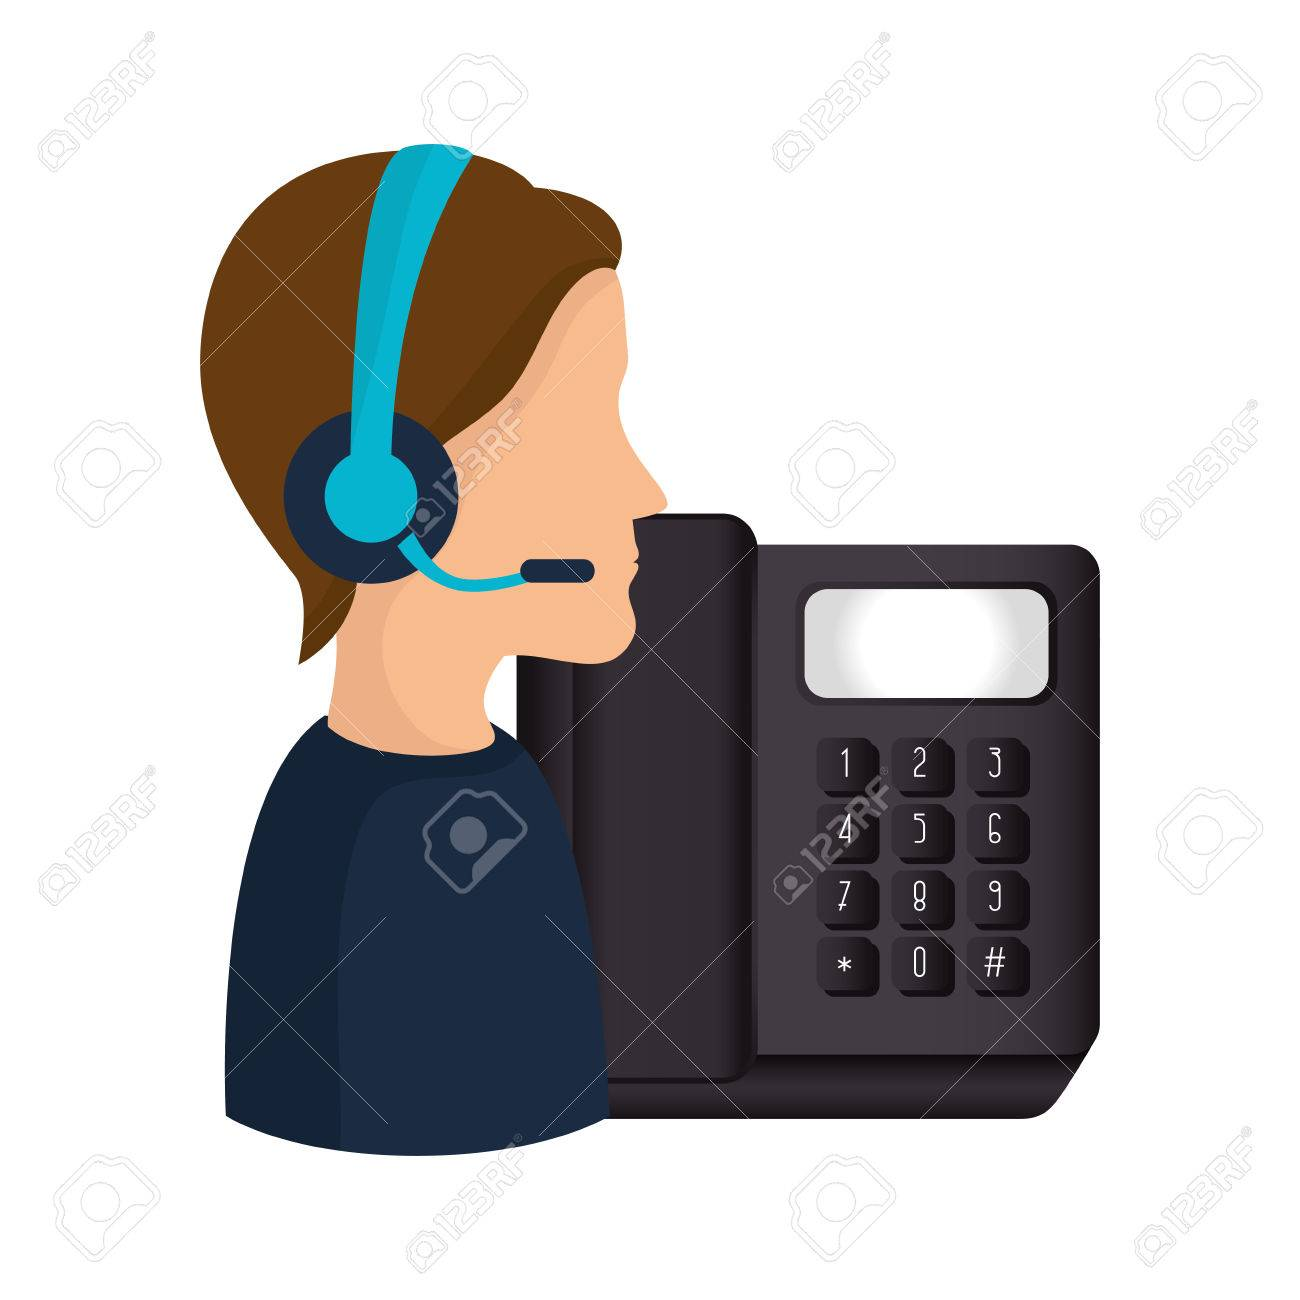 Avatar Man With Headset And Telephone Icon Call Center And Customer Royalty Free Cliparts Vectors And Stock Illustration Image 64682626